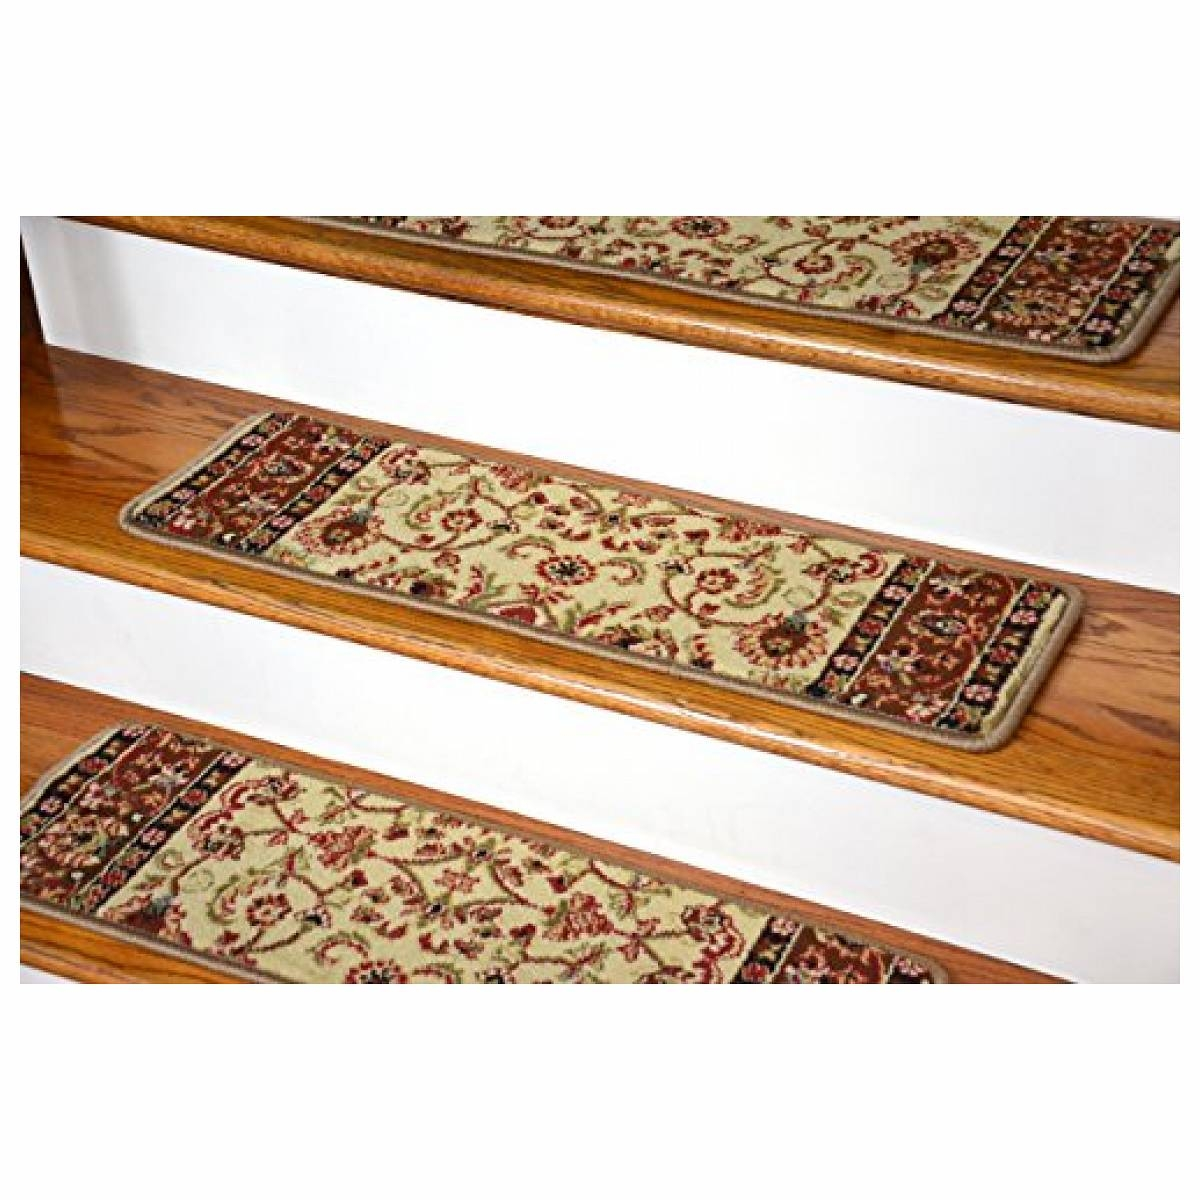 Rugs Carpet Stair Step Rugs Carpet Stair Treads In Stair Treads And Rugs (View 11 of 15)